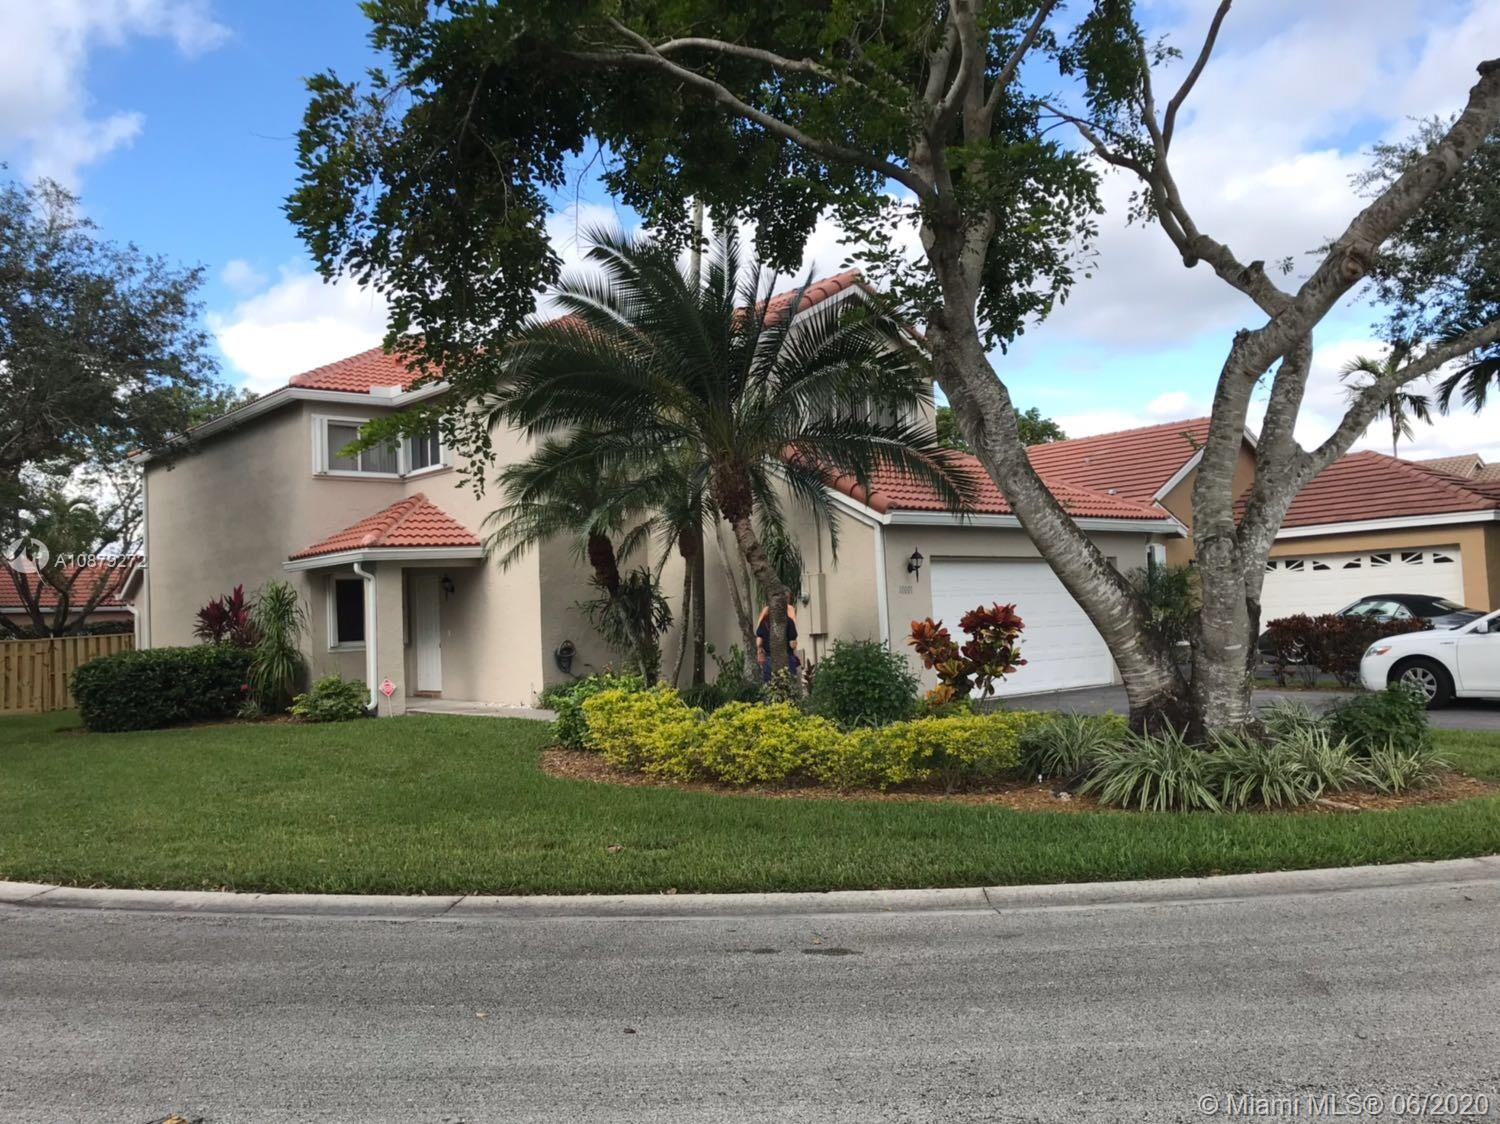 Excellent Location! Sunset Cove Gated Community! Very quiet neighborhood with friendly neighbors. 3 bed 2 1/2 bath. Oversized master bedroom, very bright house on an oversized corner lot! Accordion shutters! Community pool.